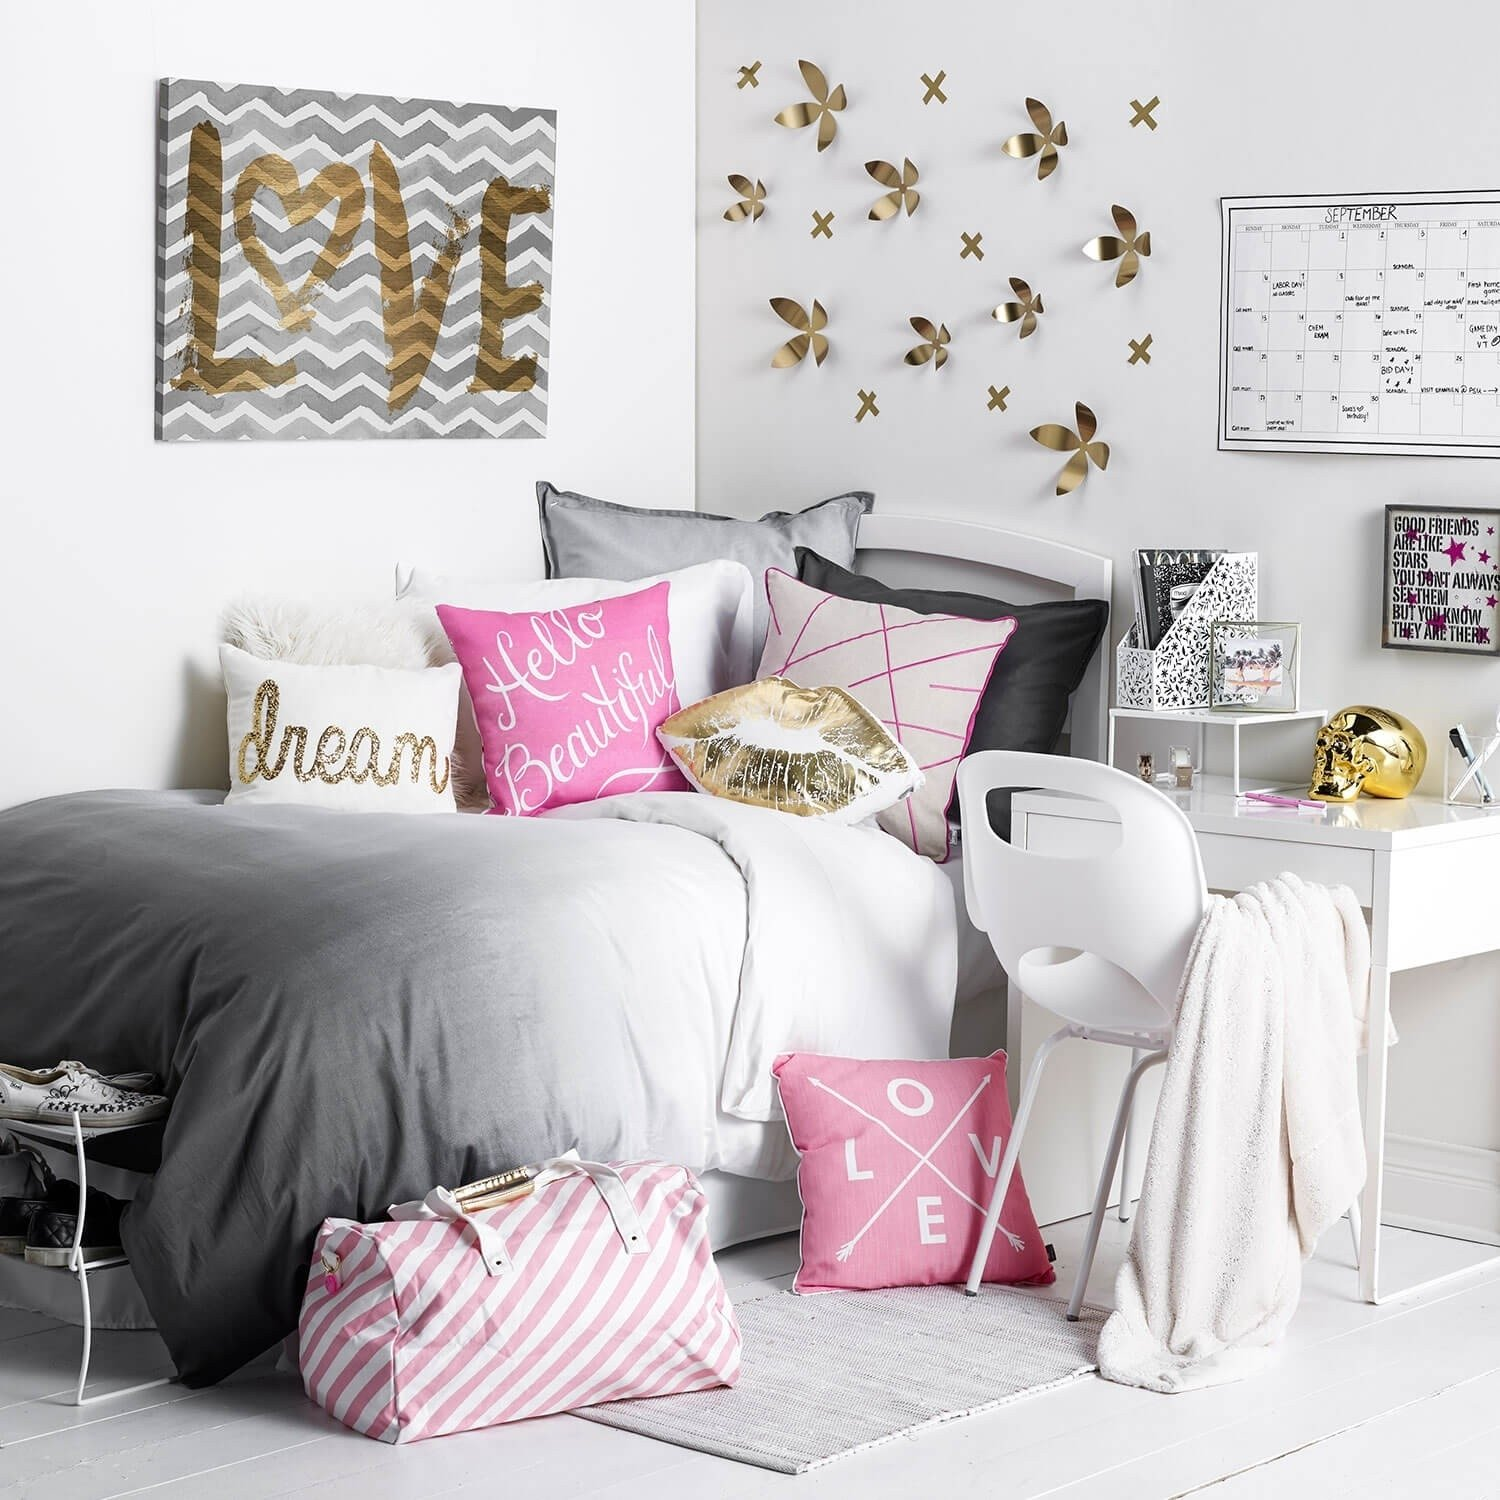 10 Most Recommended Pink Black And White Room Ideas bedroom design pink black and white bedroom accessories grey and 2020